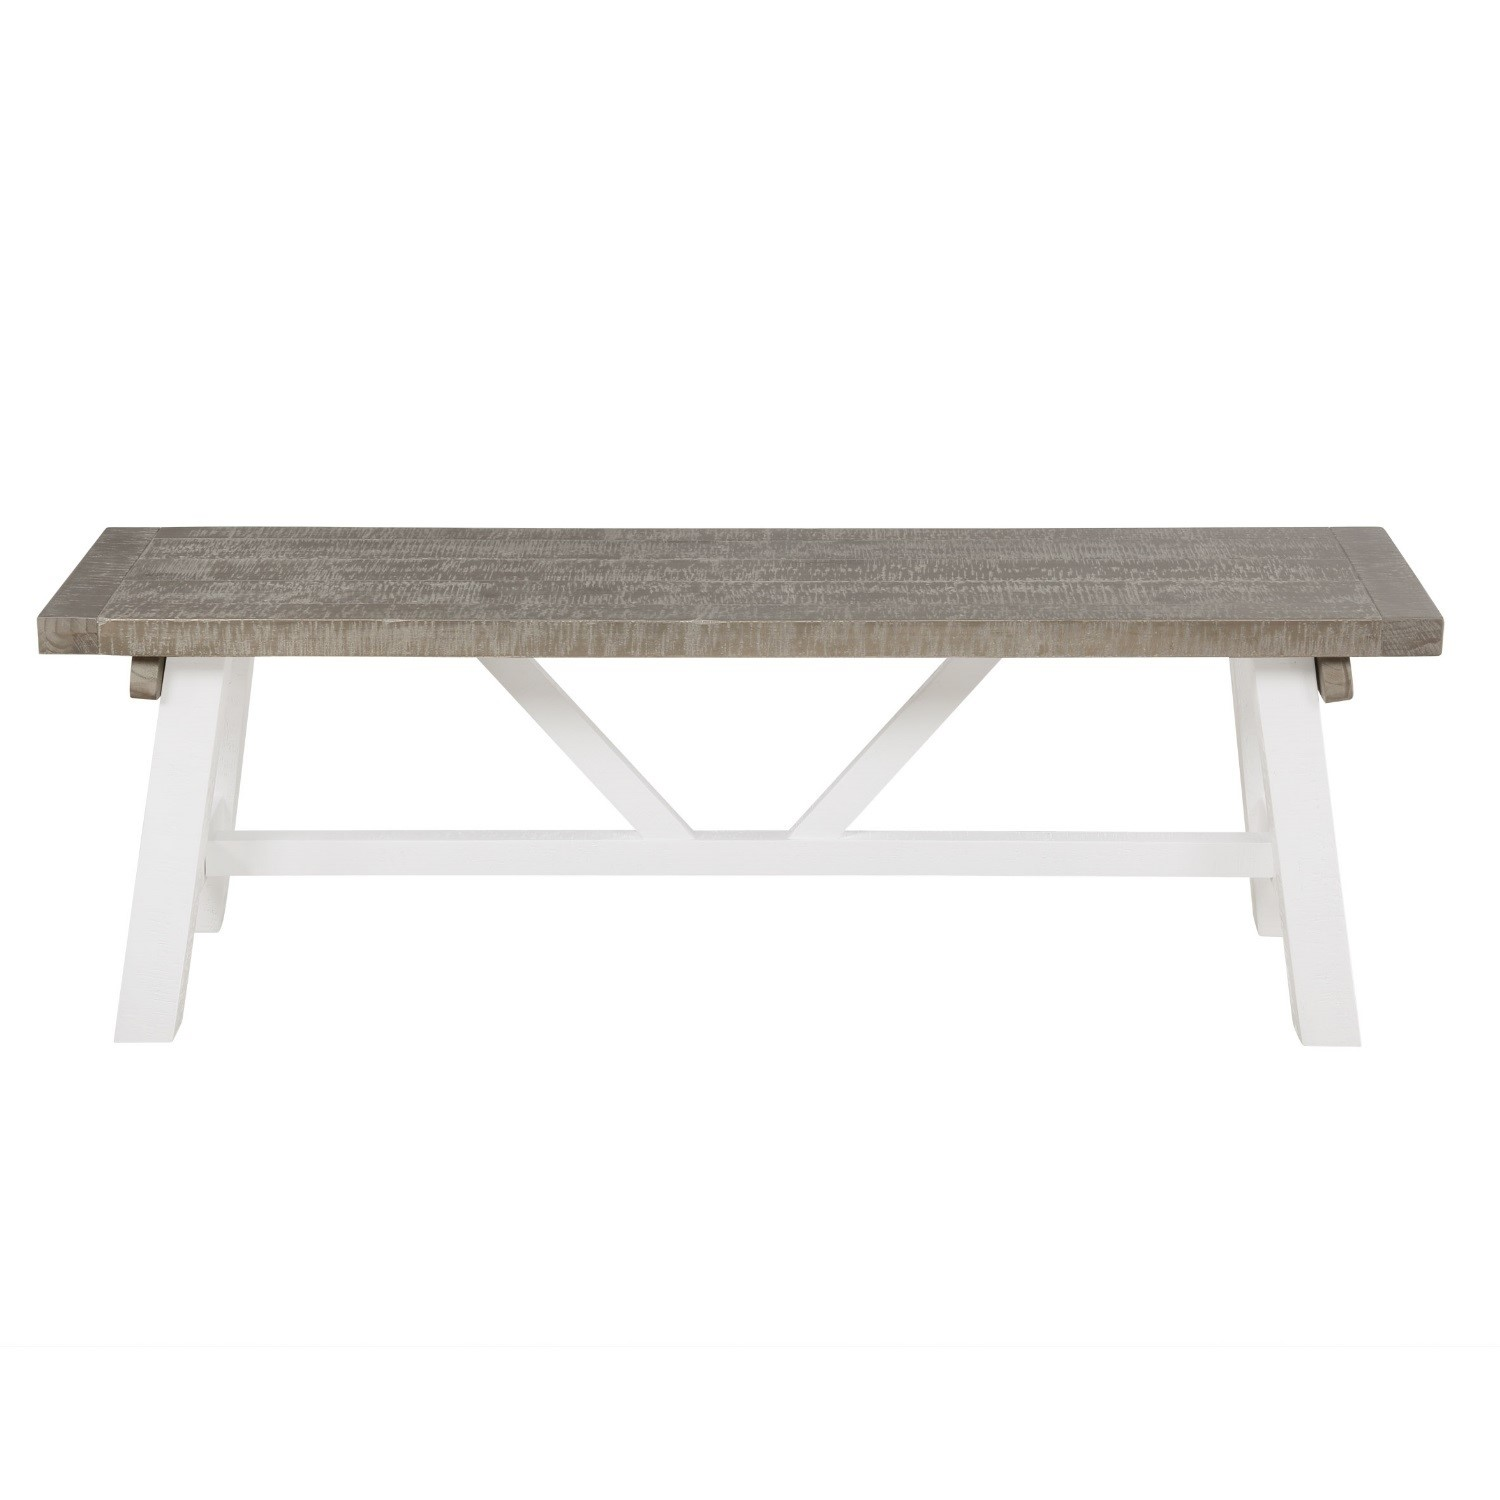 Extendable Wood Dining Table In White Grey Wash With 4 Chairs 1 Bench Fawsley Buyitdirect Ie